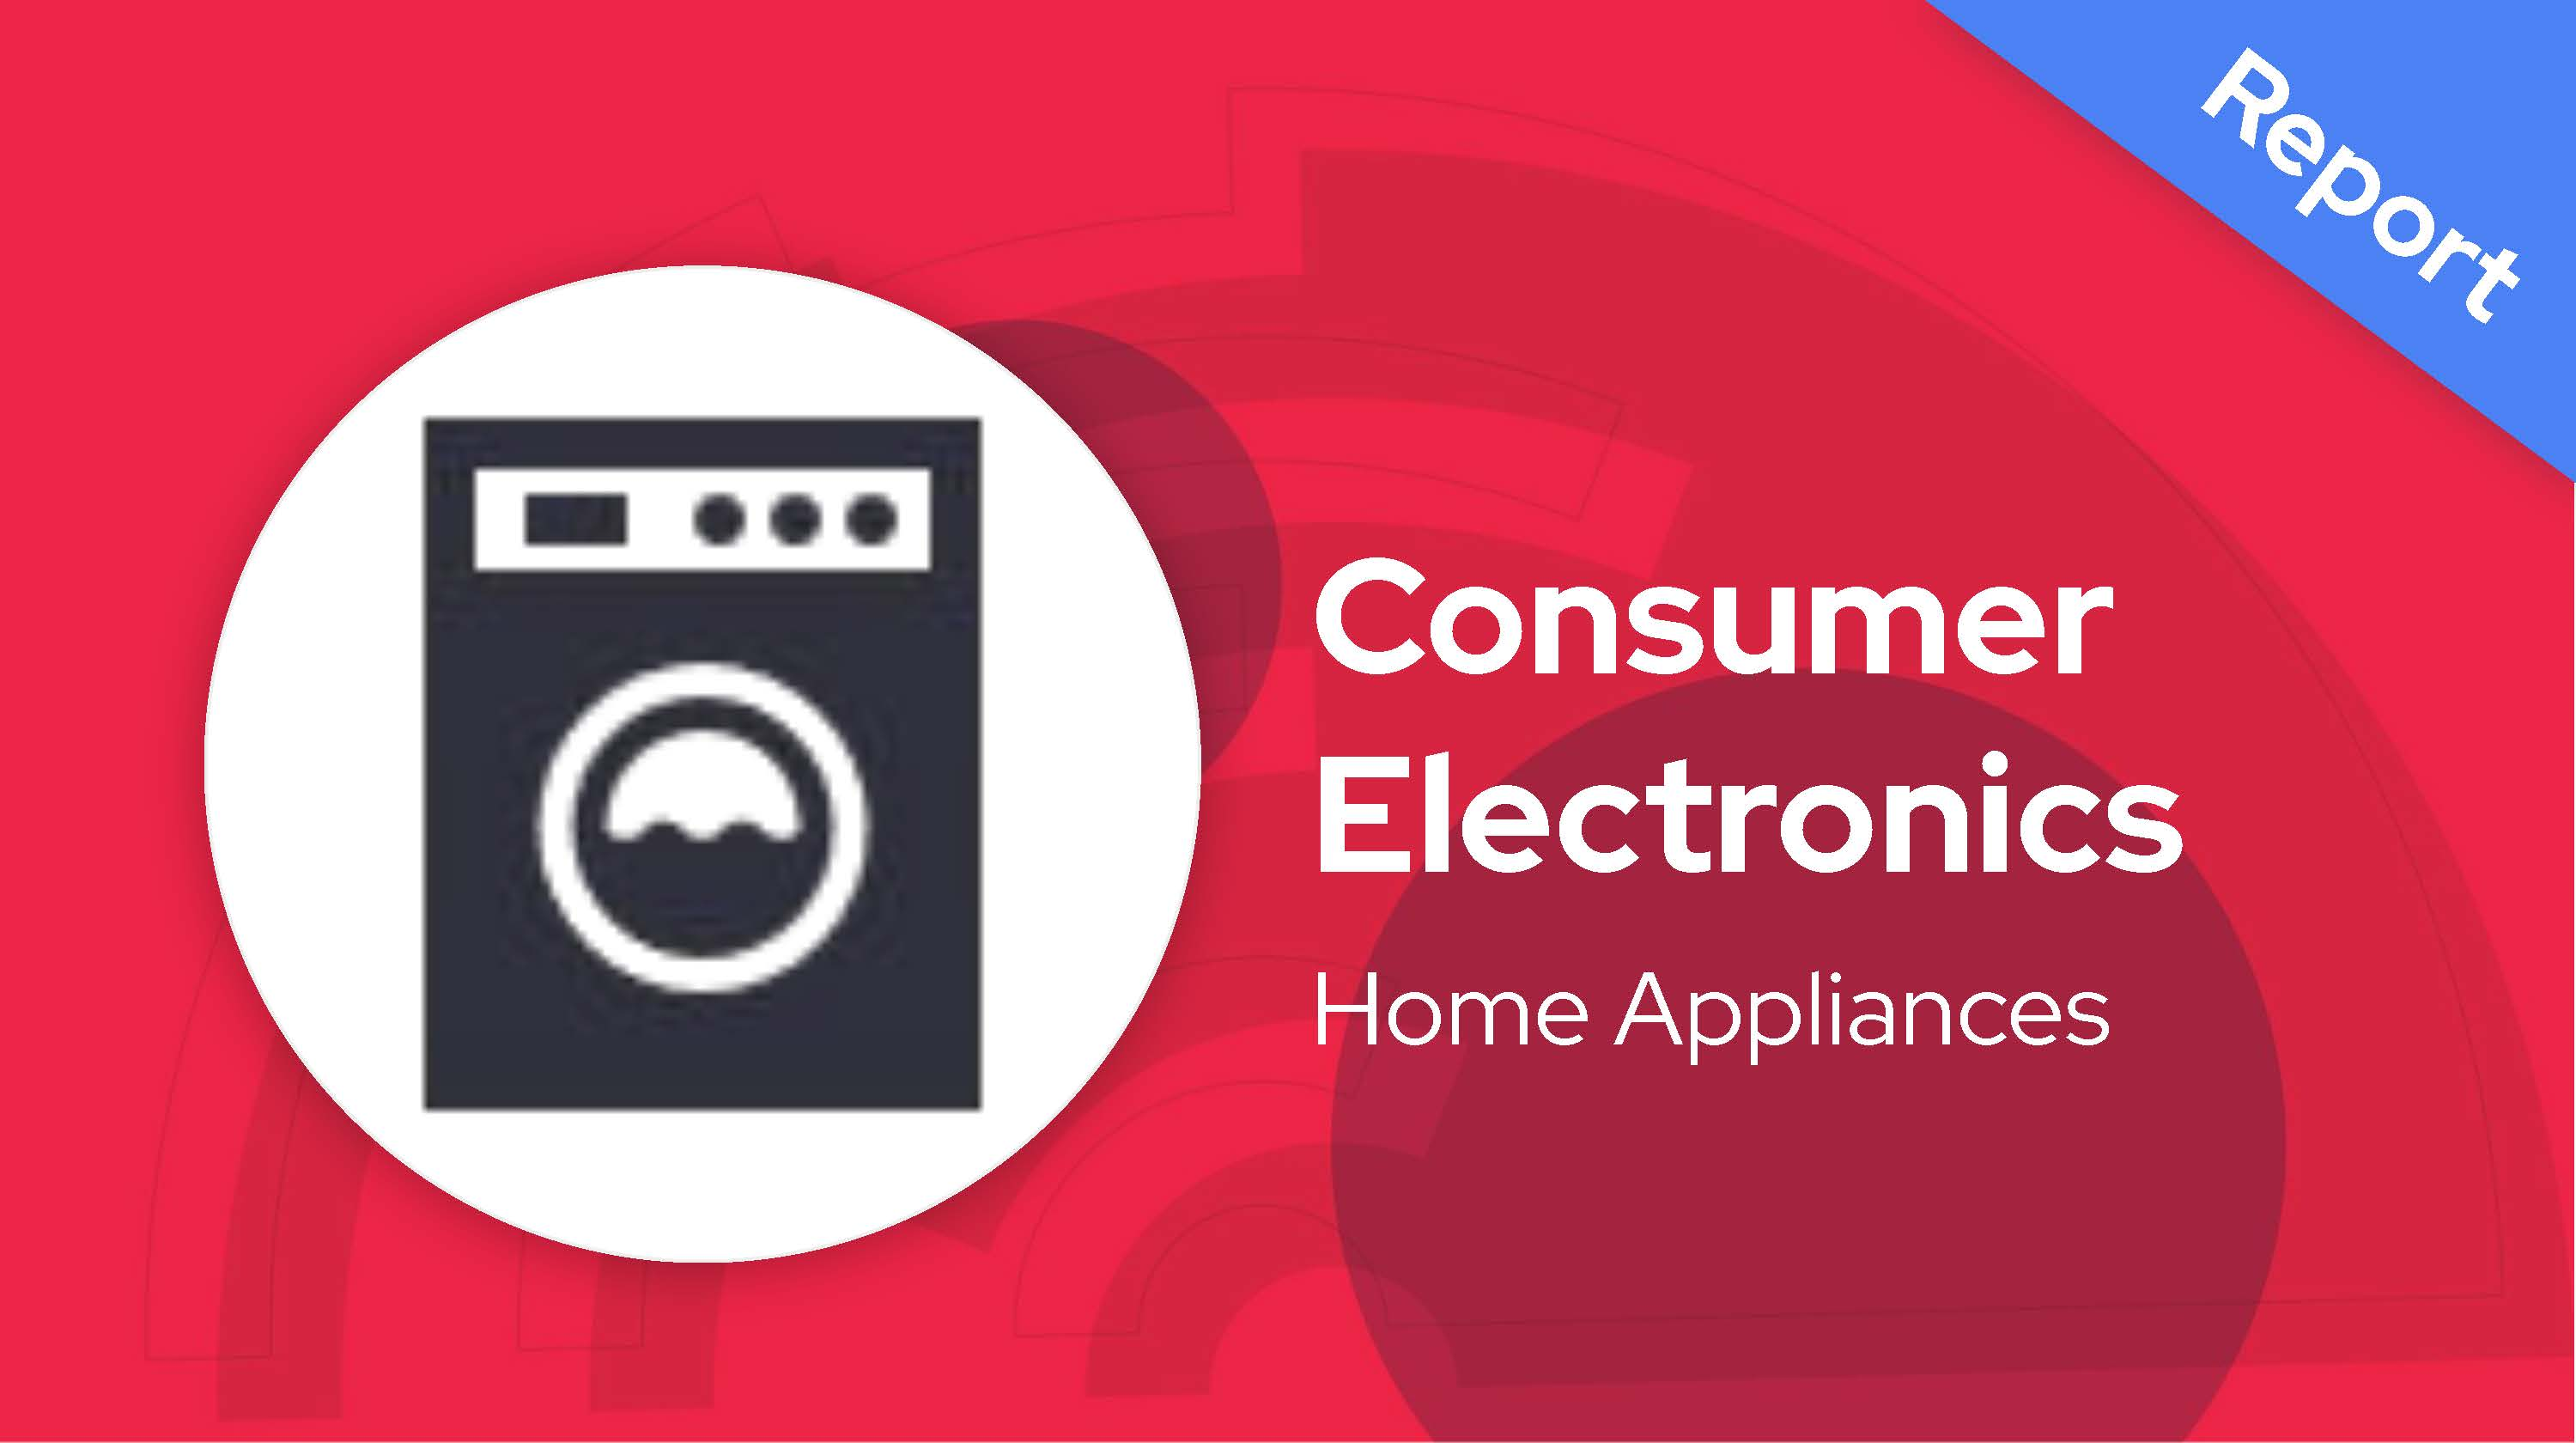 Paid Social Snapshot: Consumer Electronics Home Appliances